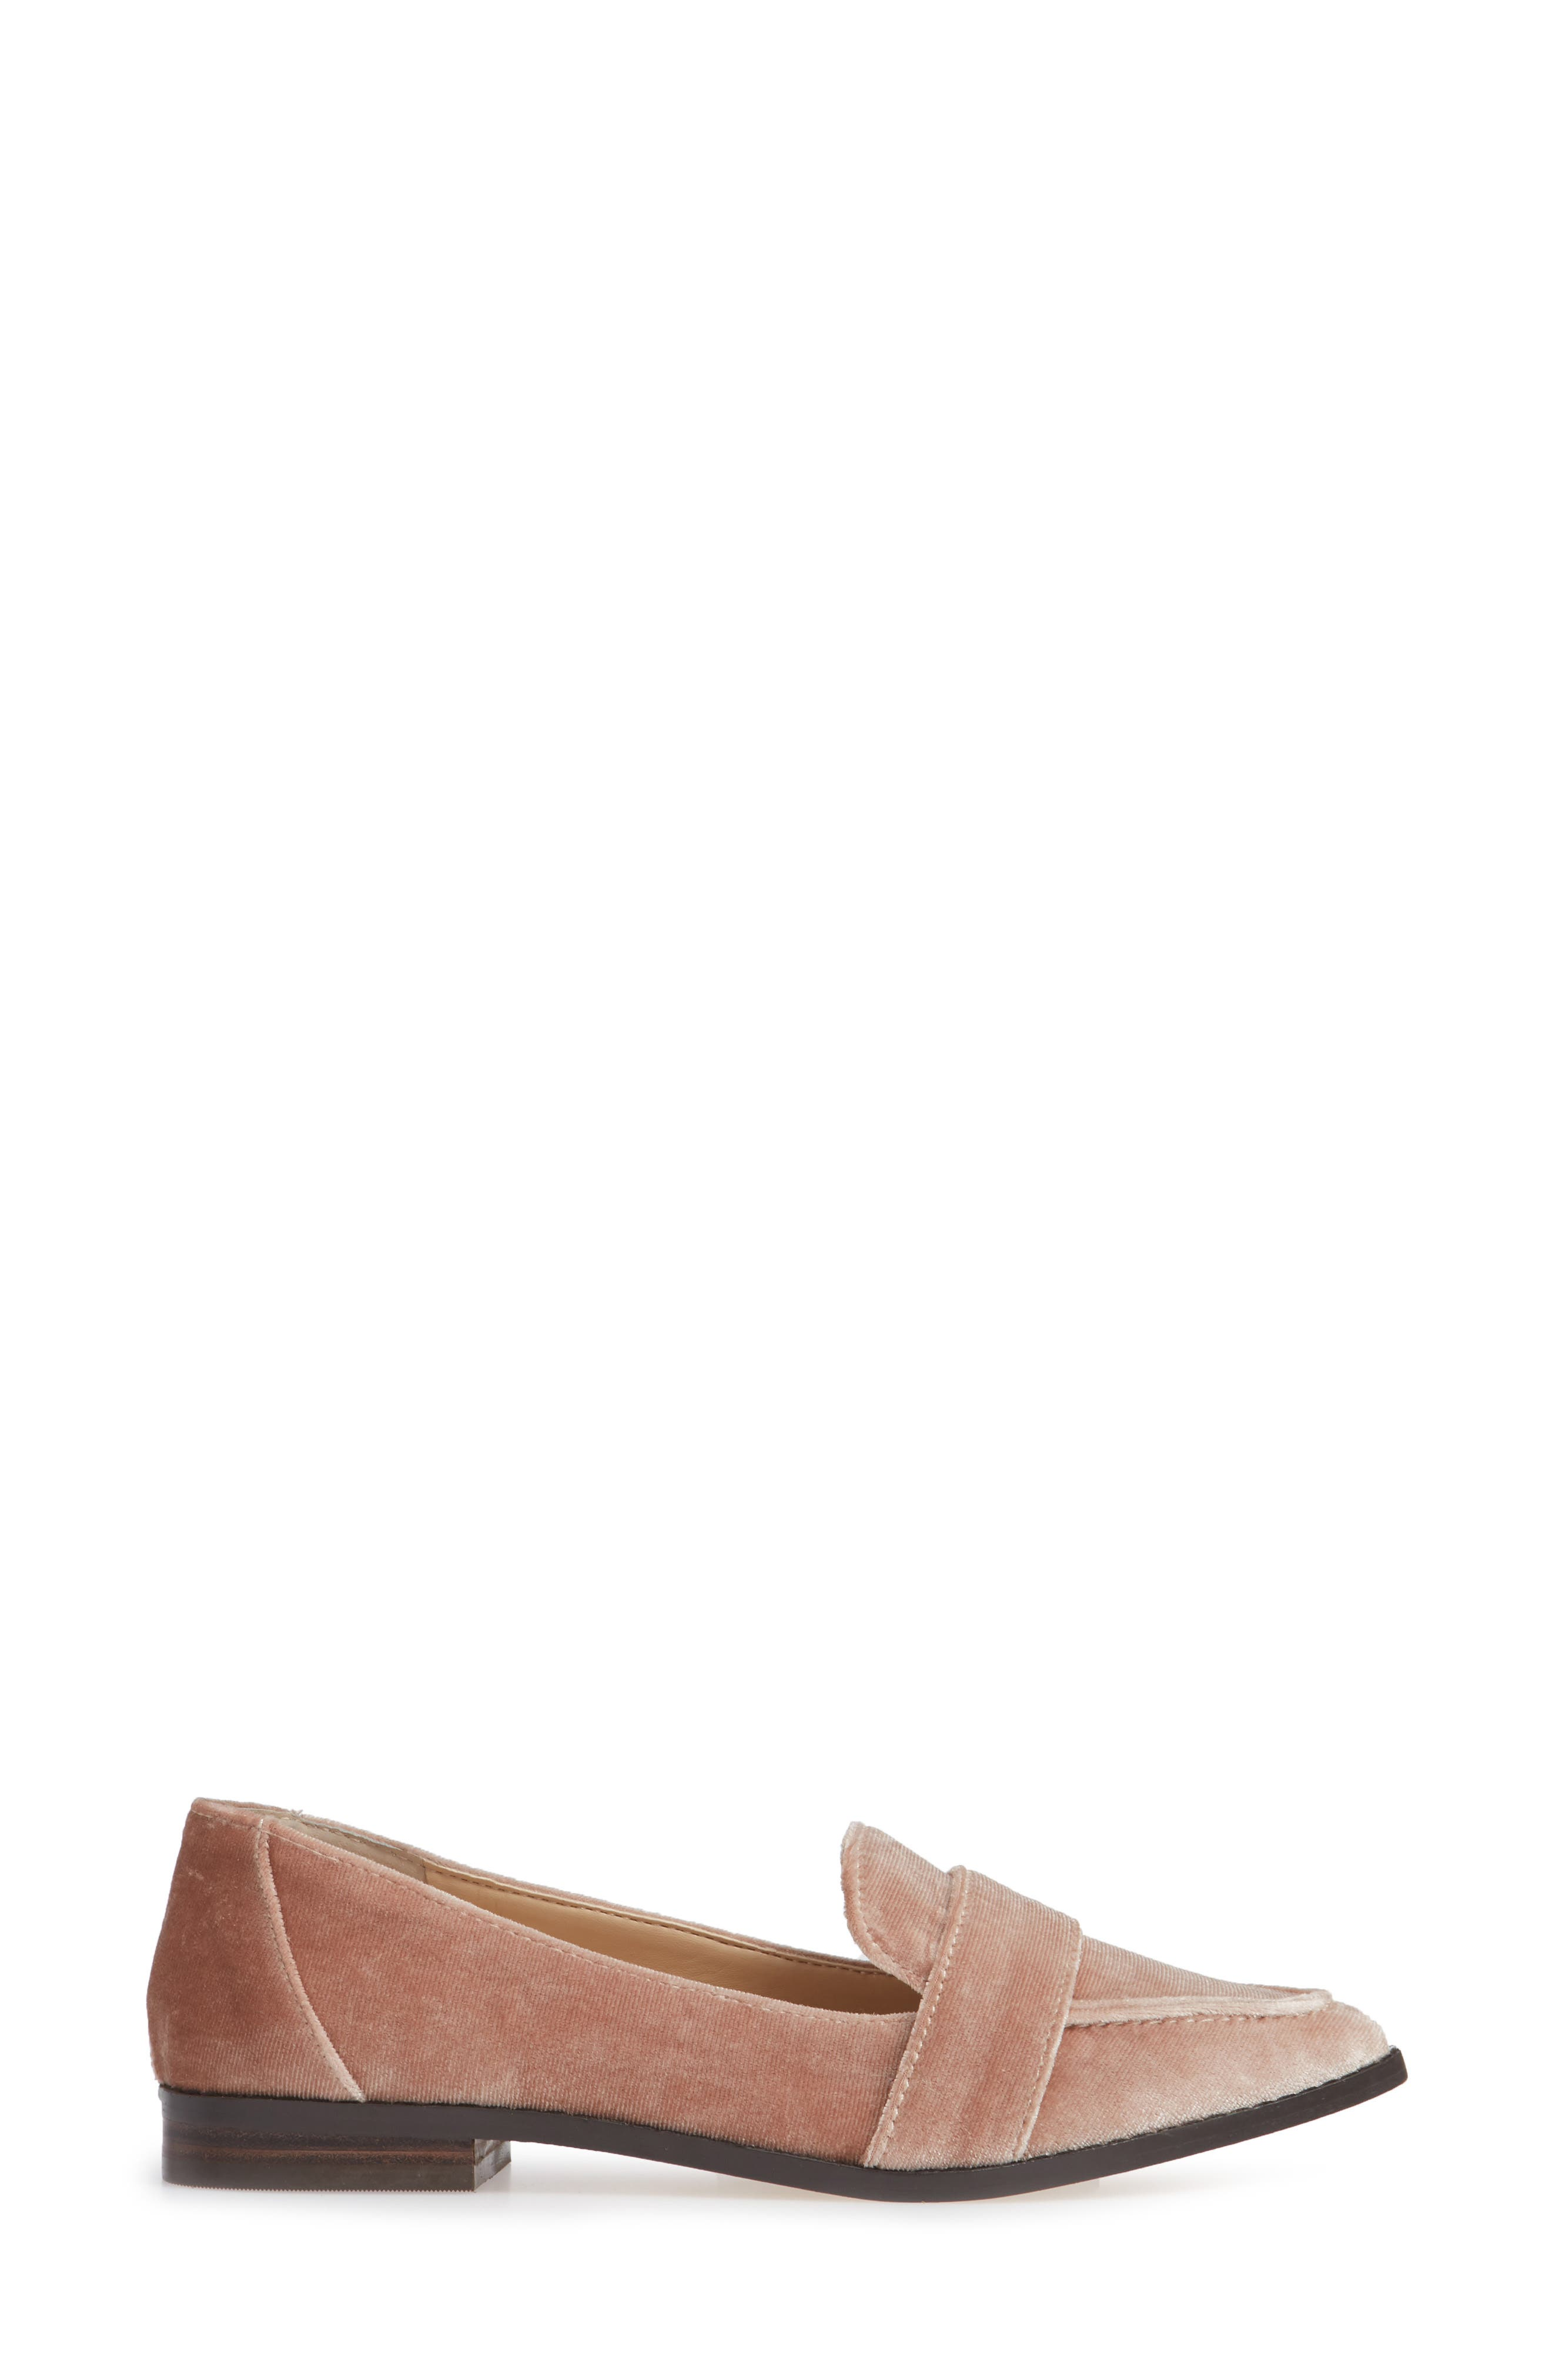 SOLE SOCIETY, Edie Pointy Toe Loafer, Alternate thumbnail 3, color, 682